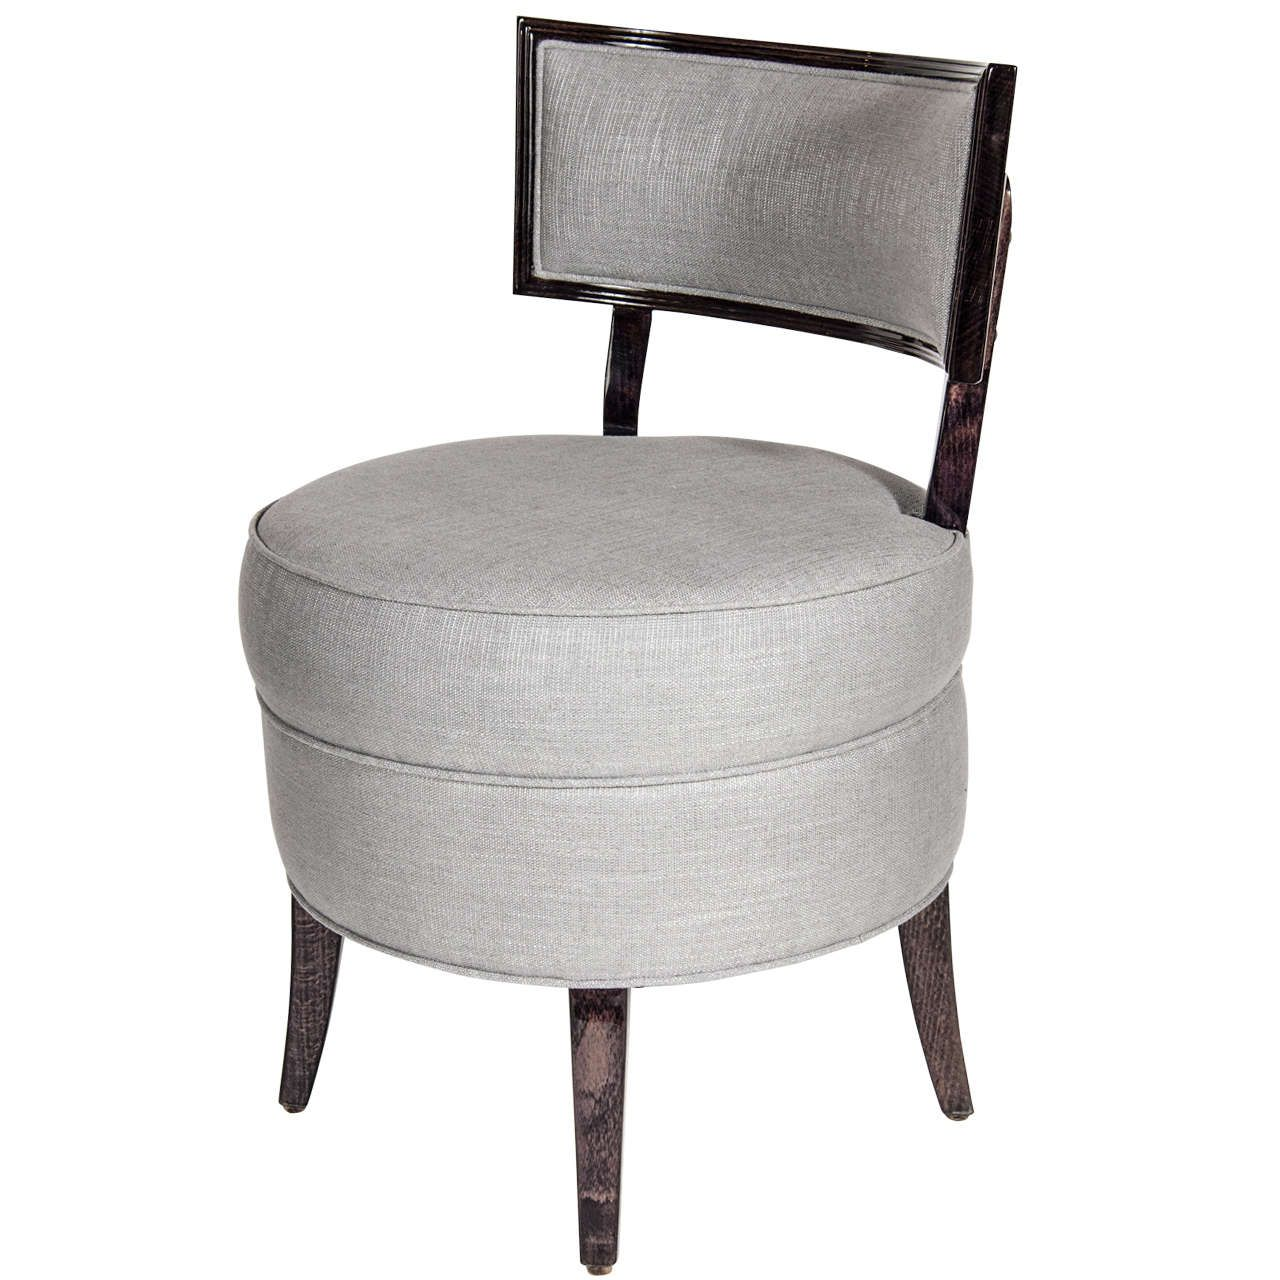 Stylish Vanity Stools And Chairs For Modern Bedroom Furniture Small